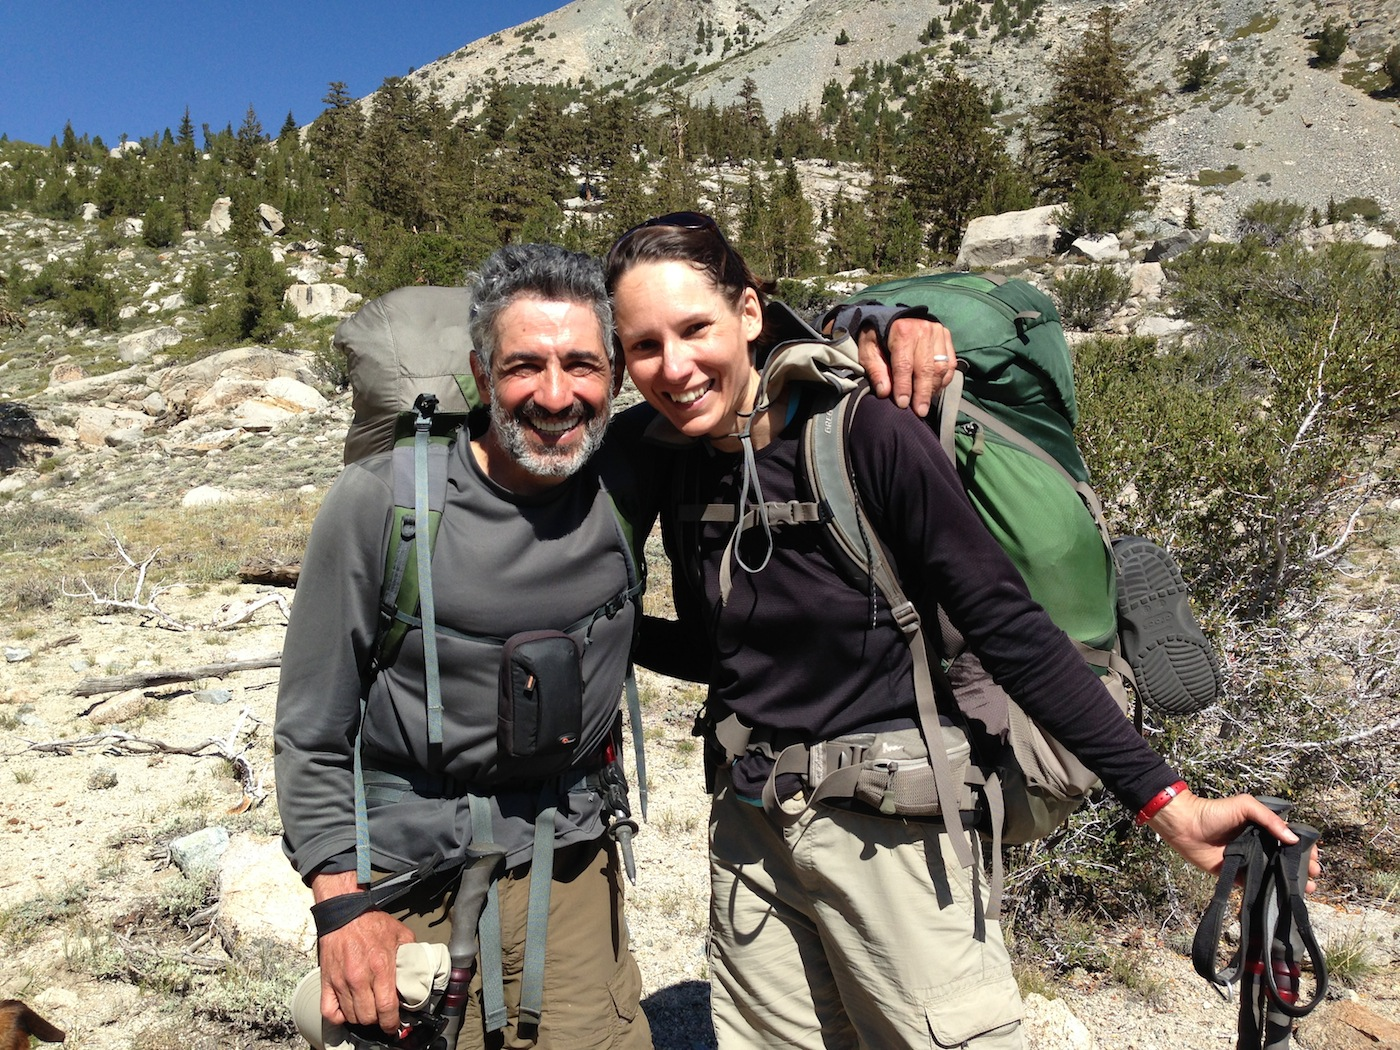 JMT hikers Ehsan and Kate from Chicago are radiant as they head up to Kearsarge Pass on Aug. 22